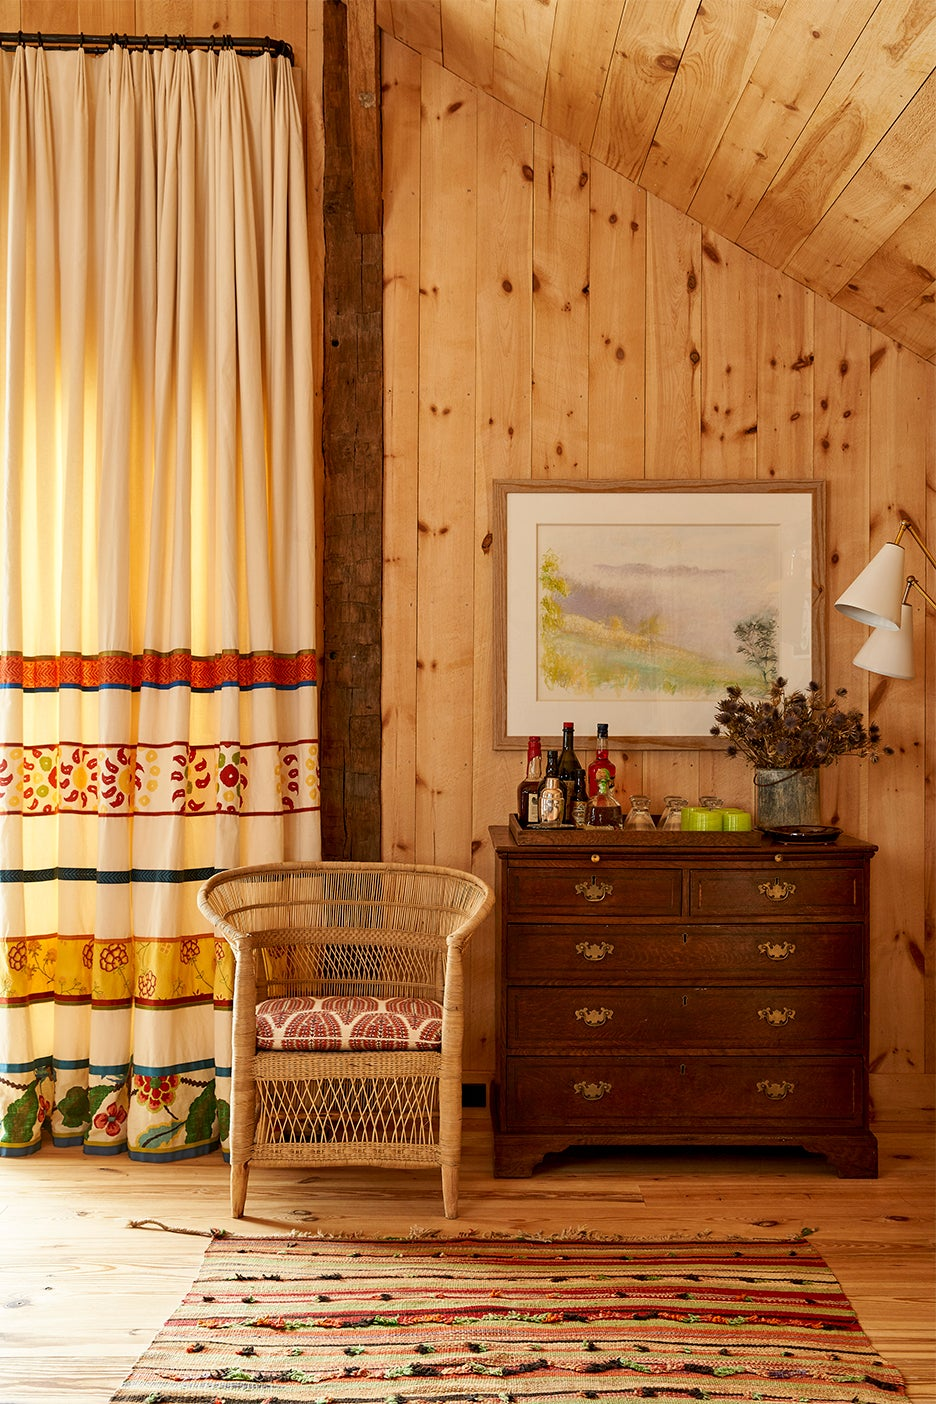 Woven chair and antique dresser in wood-paneled room